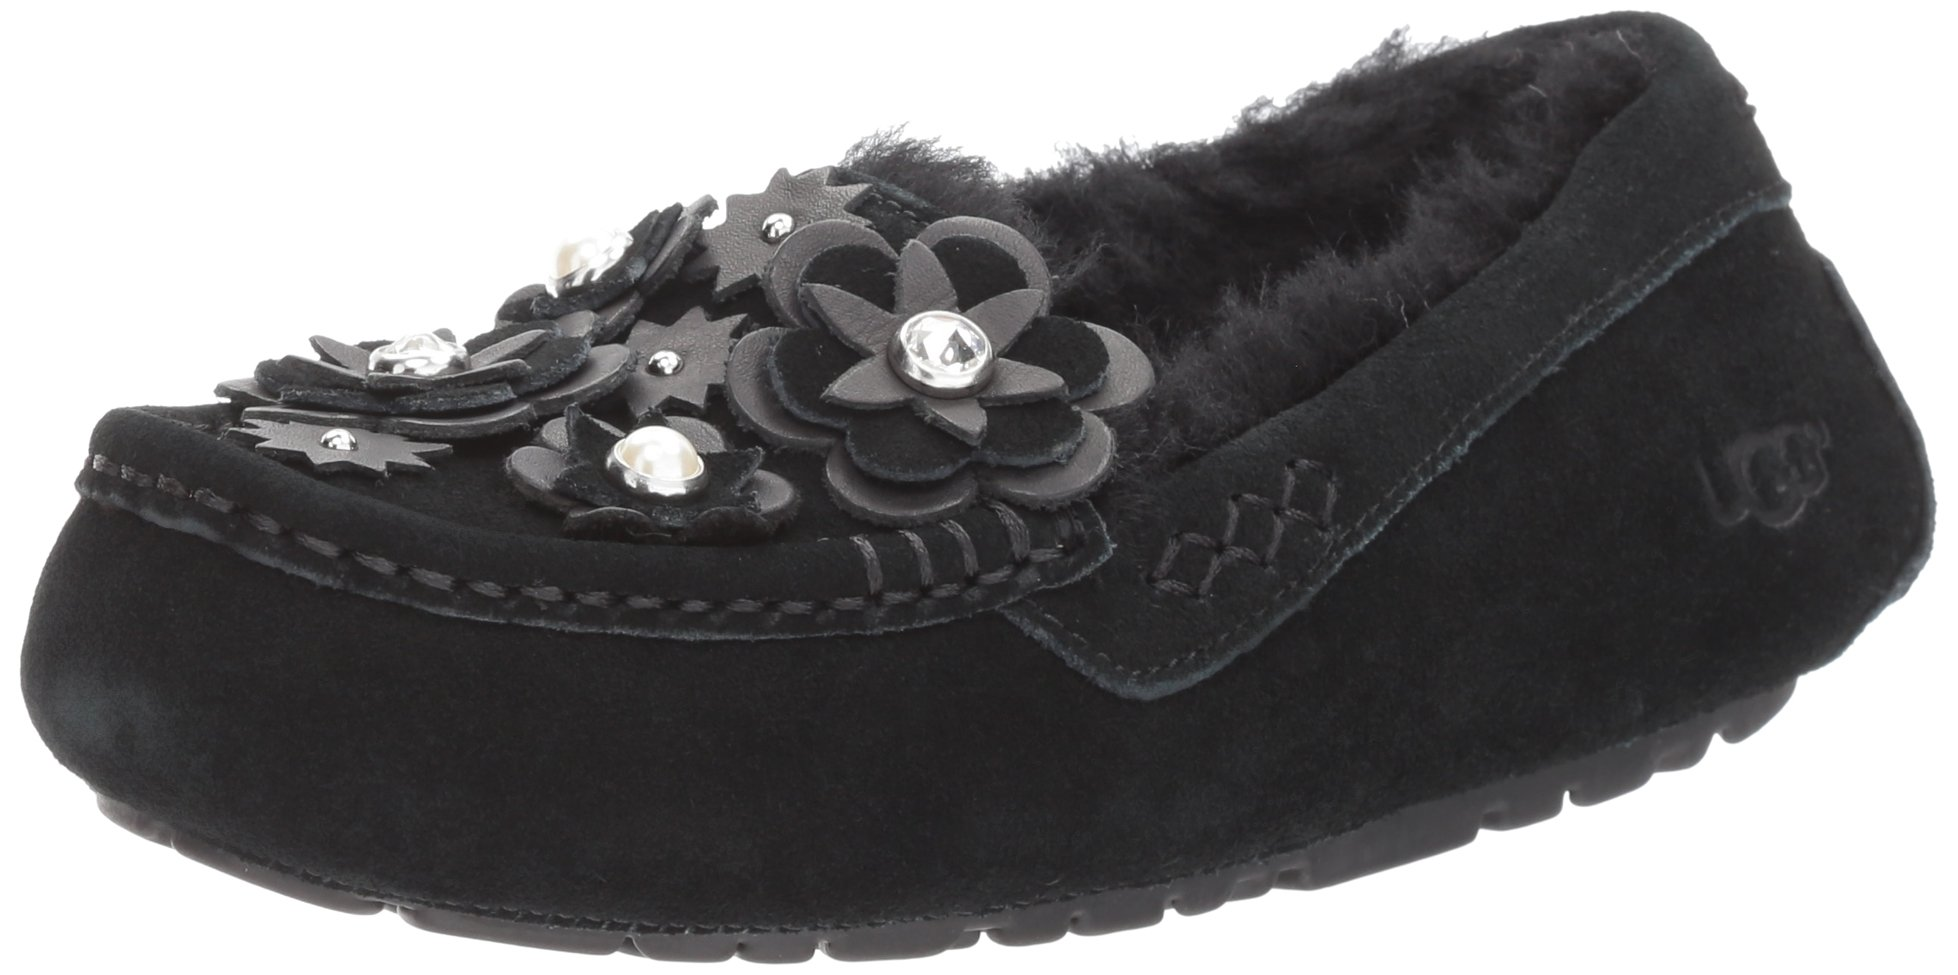 UGG Women's Ansley Petal Slipper, Black, 8 M US